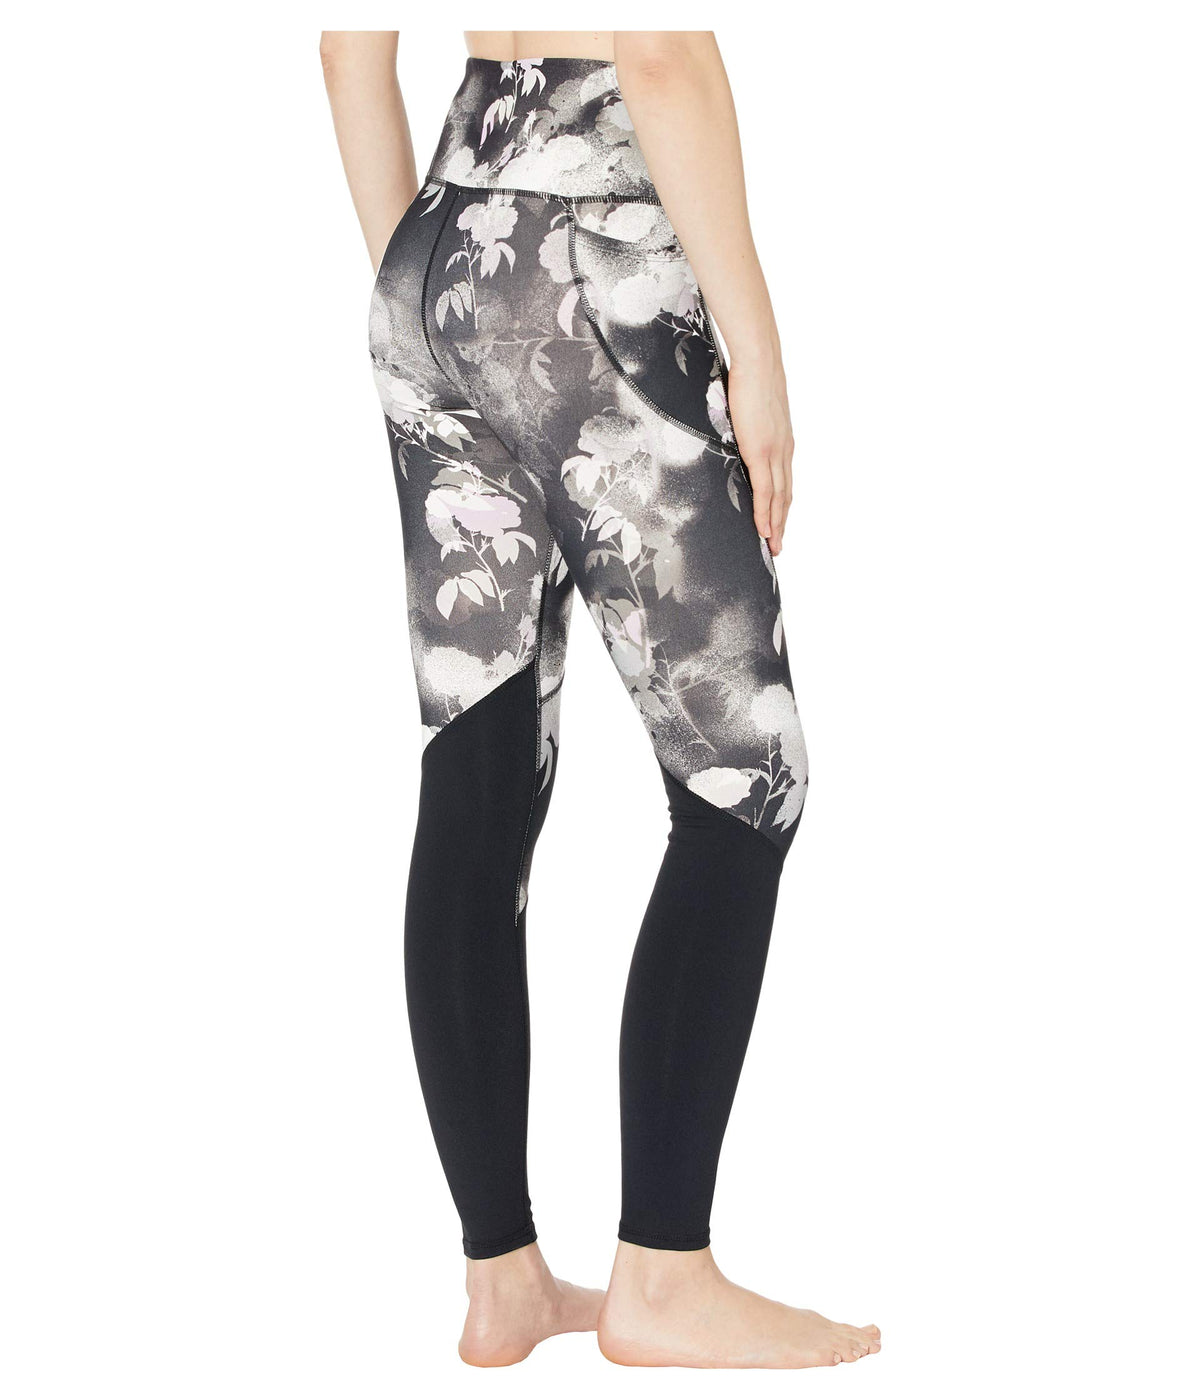 Ink Floral Printed High-Waist Leggings